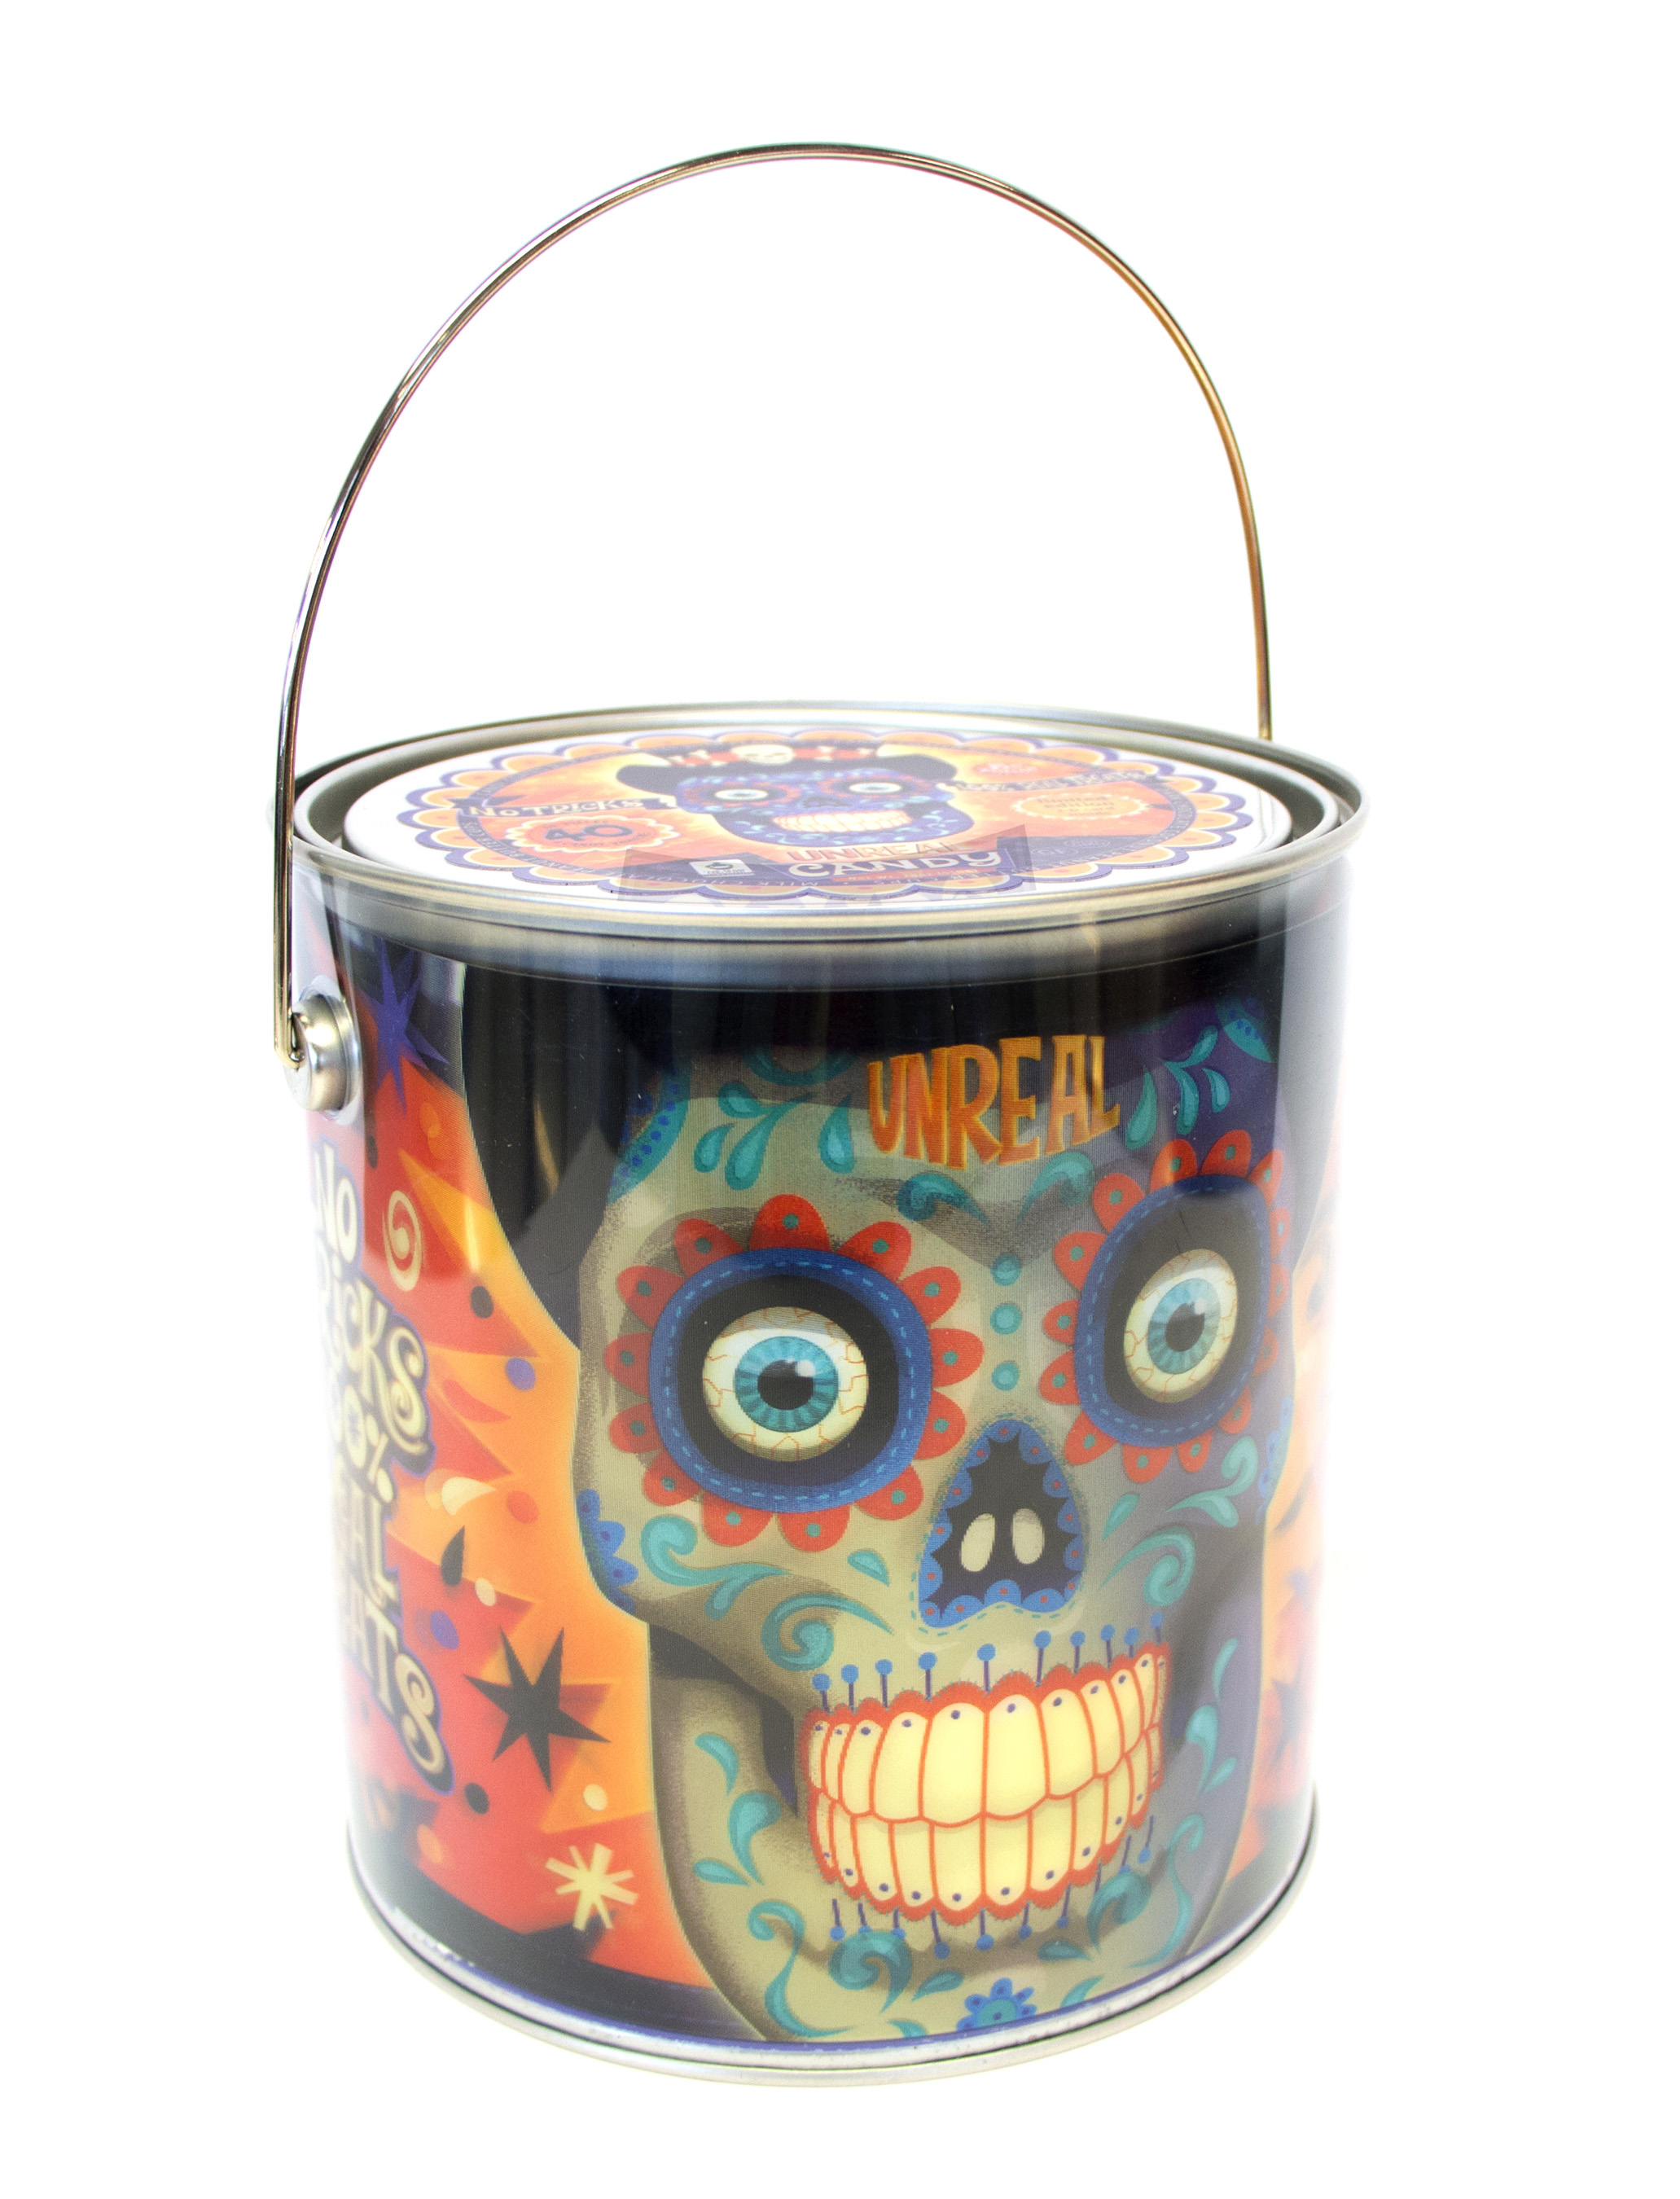 3-D Day of the Dead themed buckets with 40 snack size pieces of UnReal candy